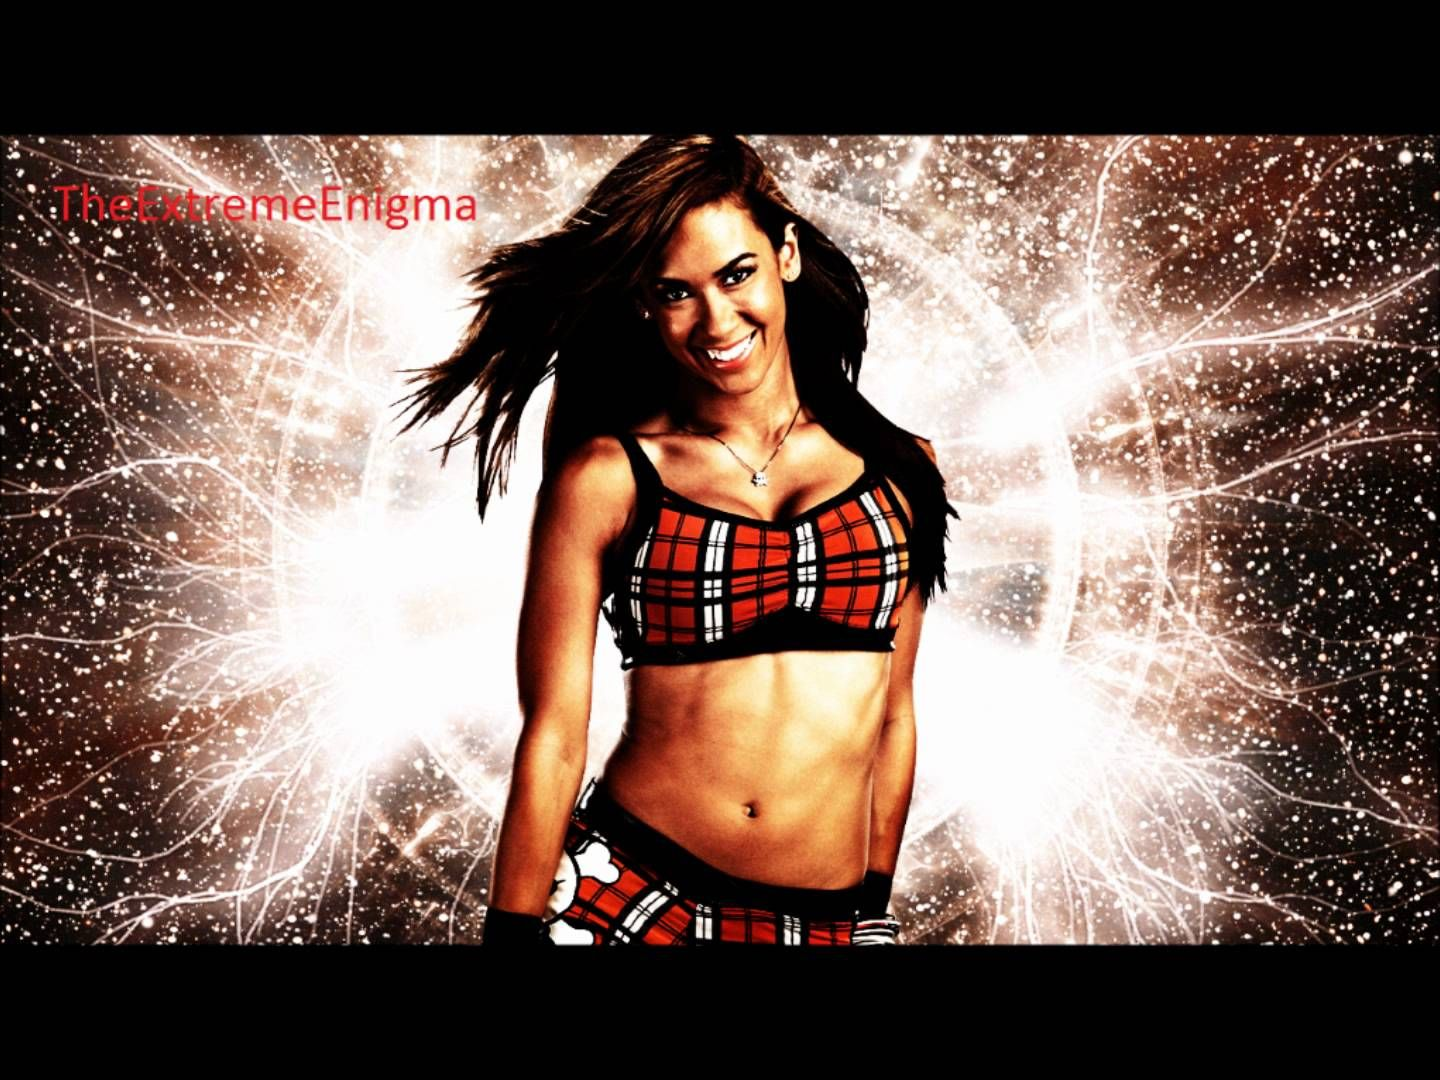 Google themes wwe - Aj Lee 4th Wwe Theme Song Lets Light It Up Love This Song Aj